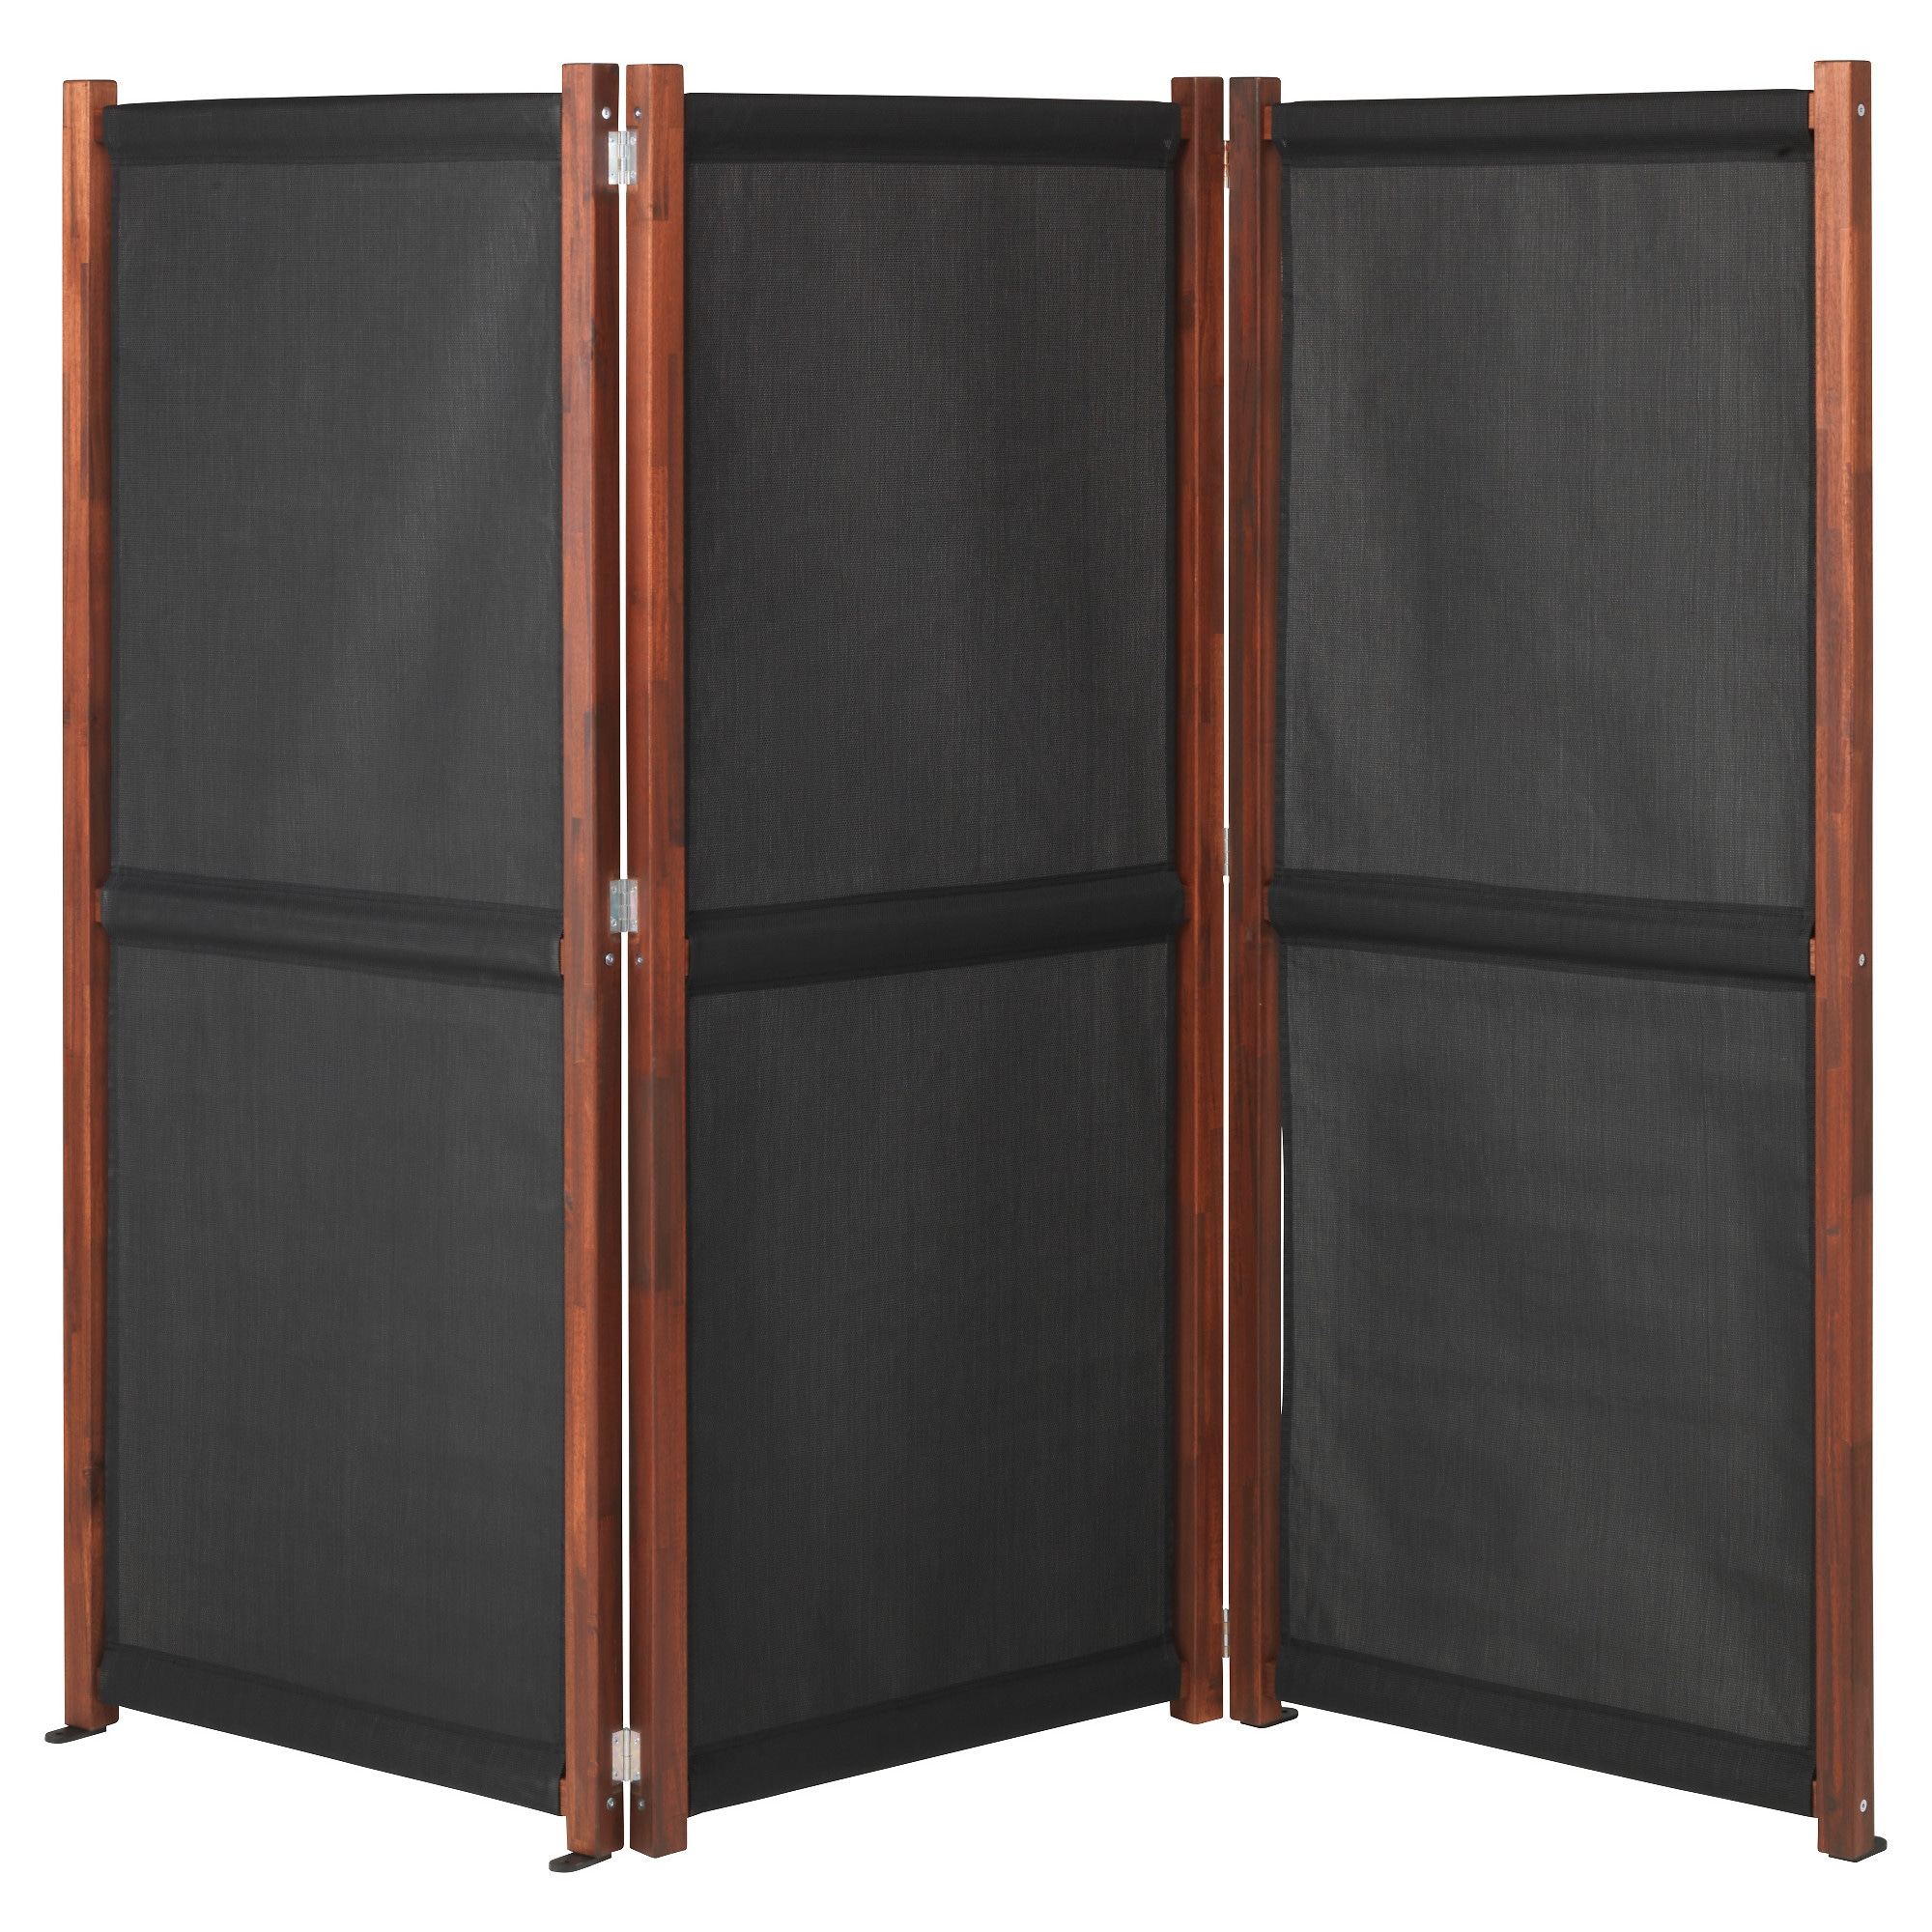 SlÄttÖ Privacy Screen Outdoor Black Brown Stained